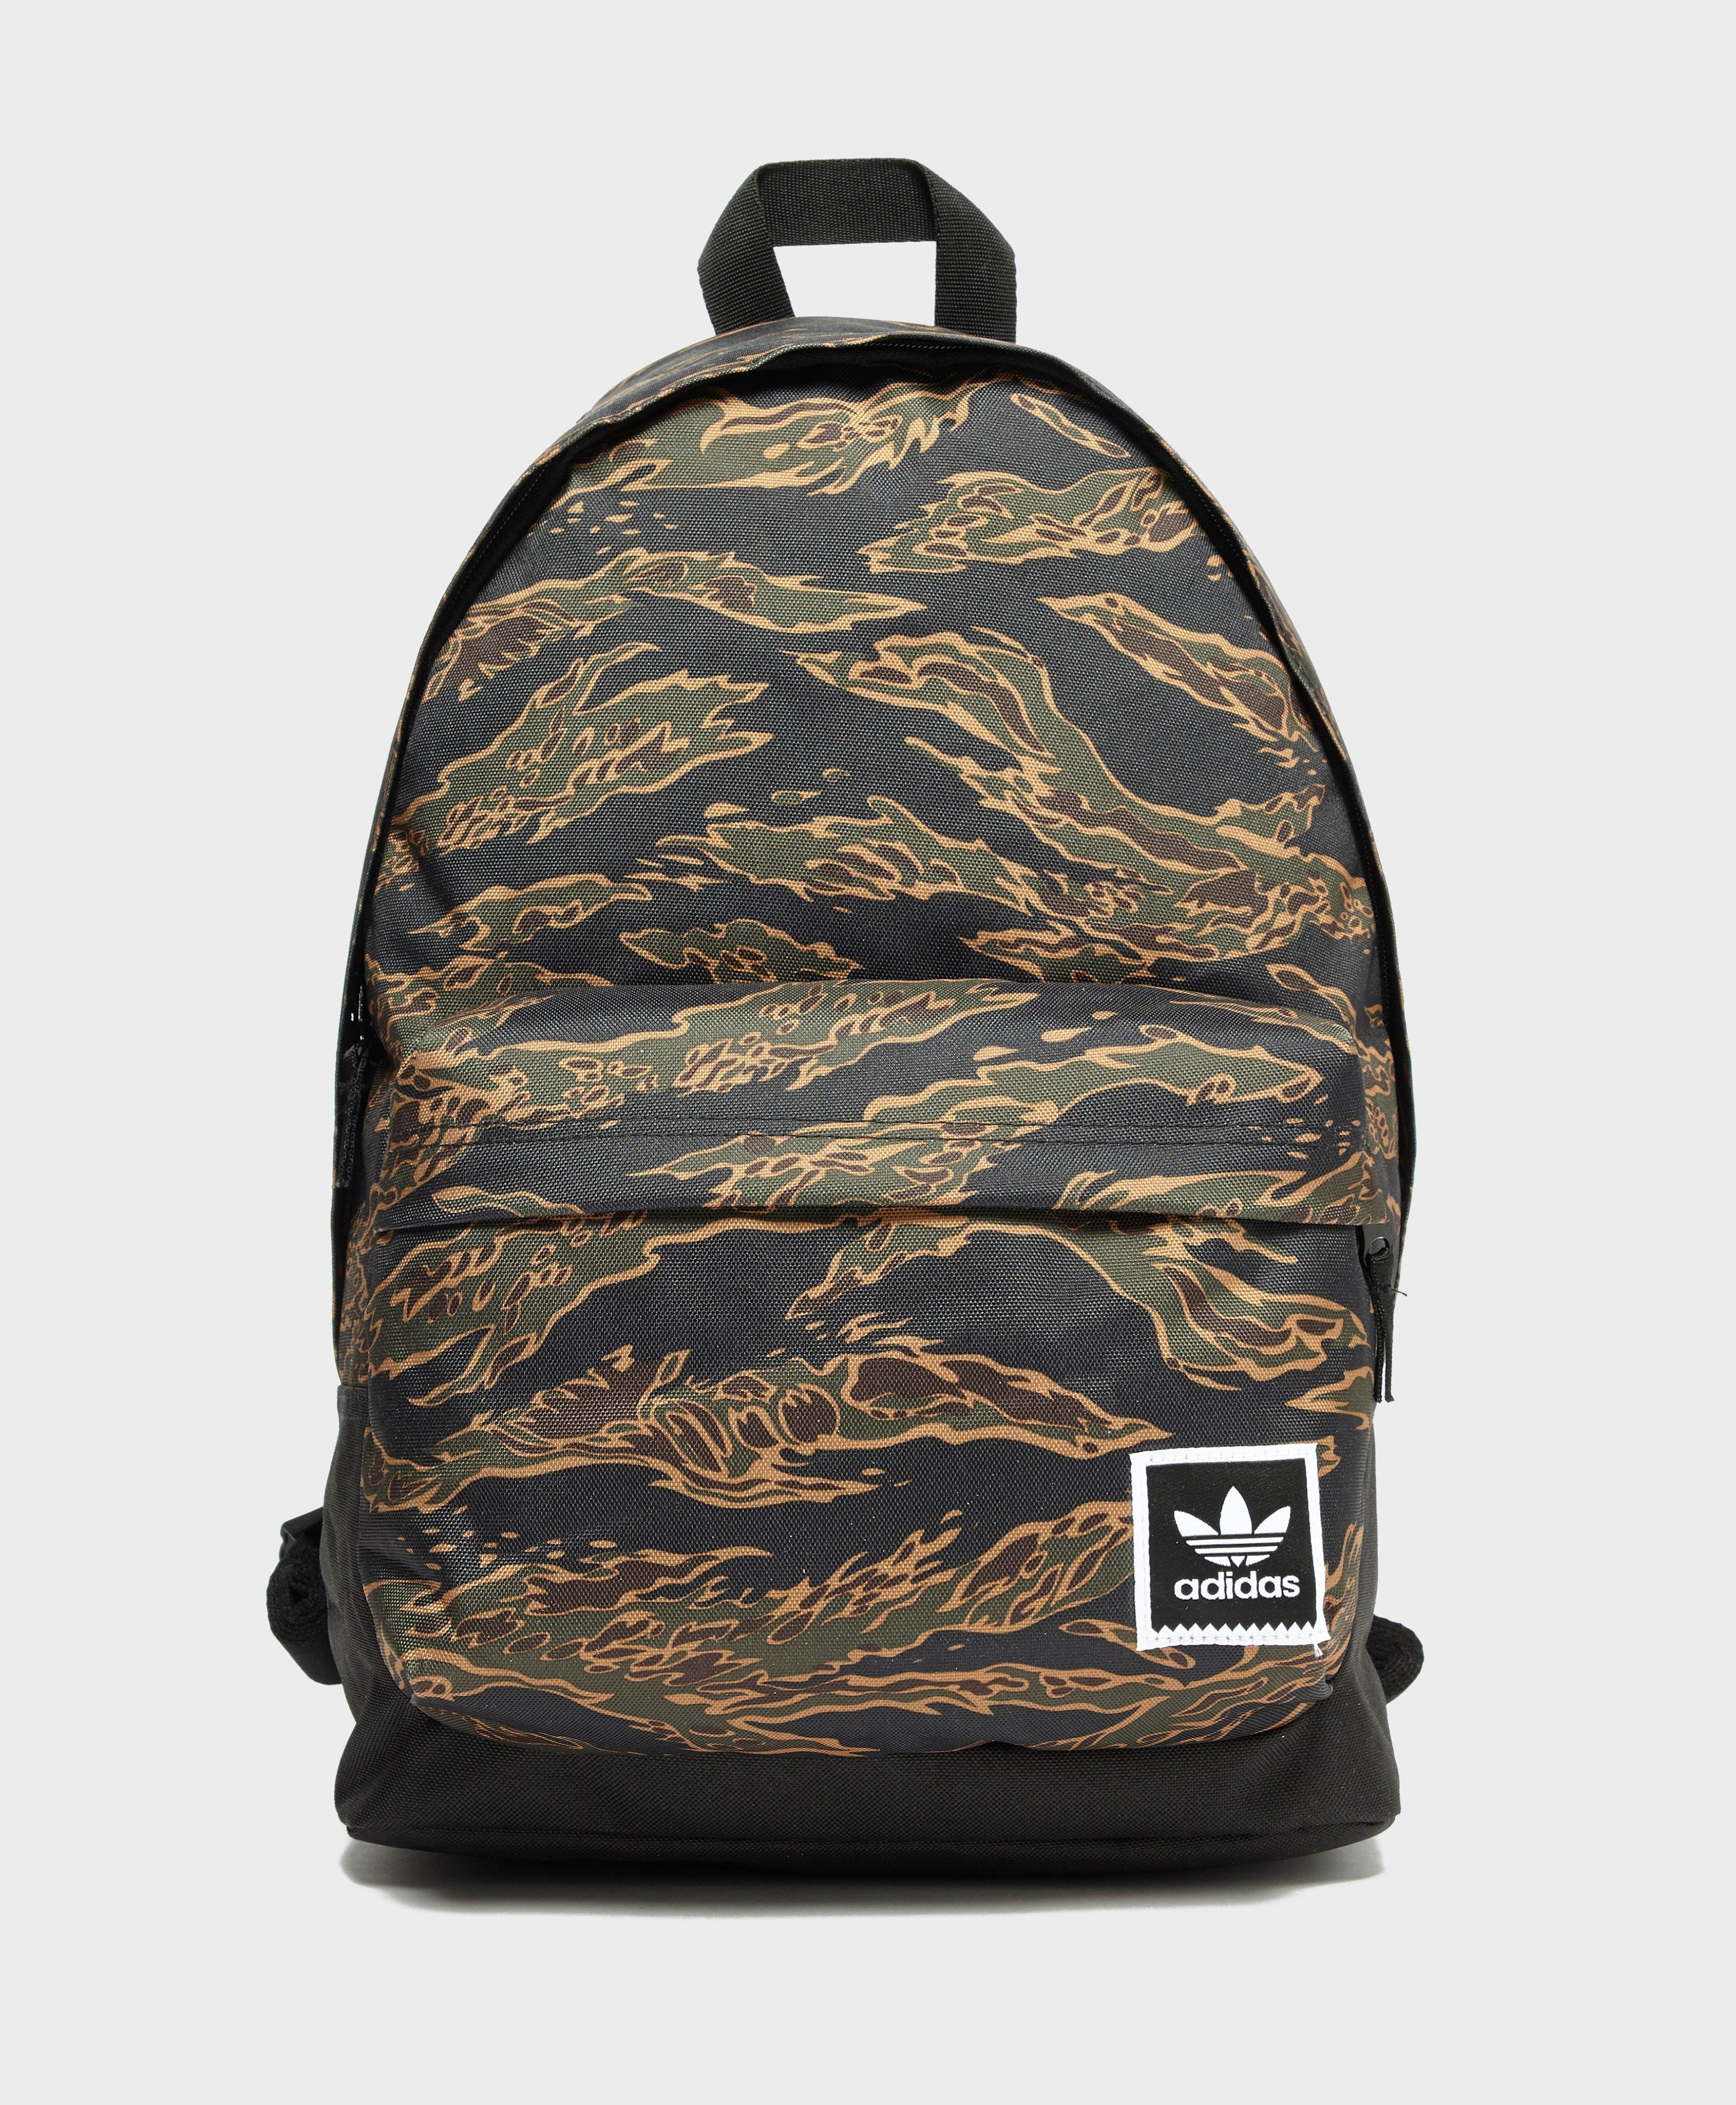 665e04a2c77 Lyst - Adidas Originals Camo Print Backpack - Online Exclusive for Men